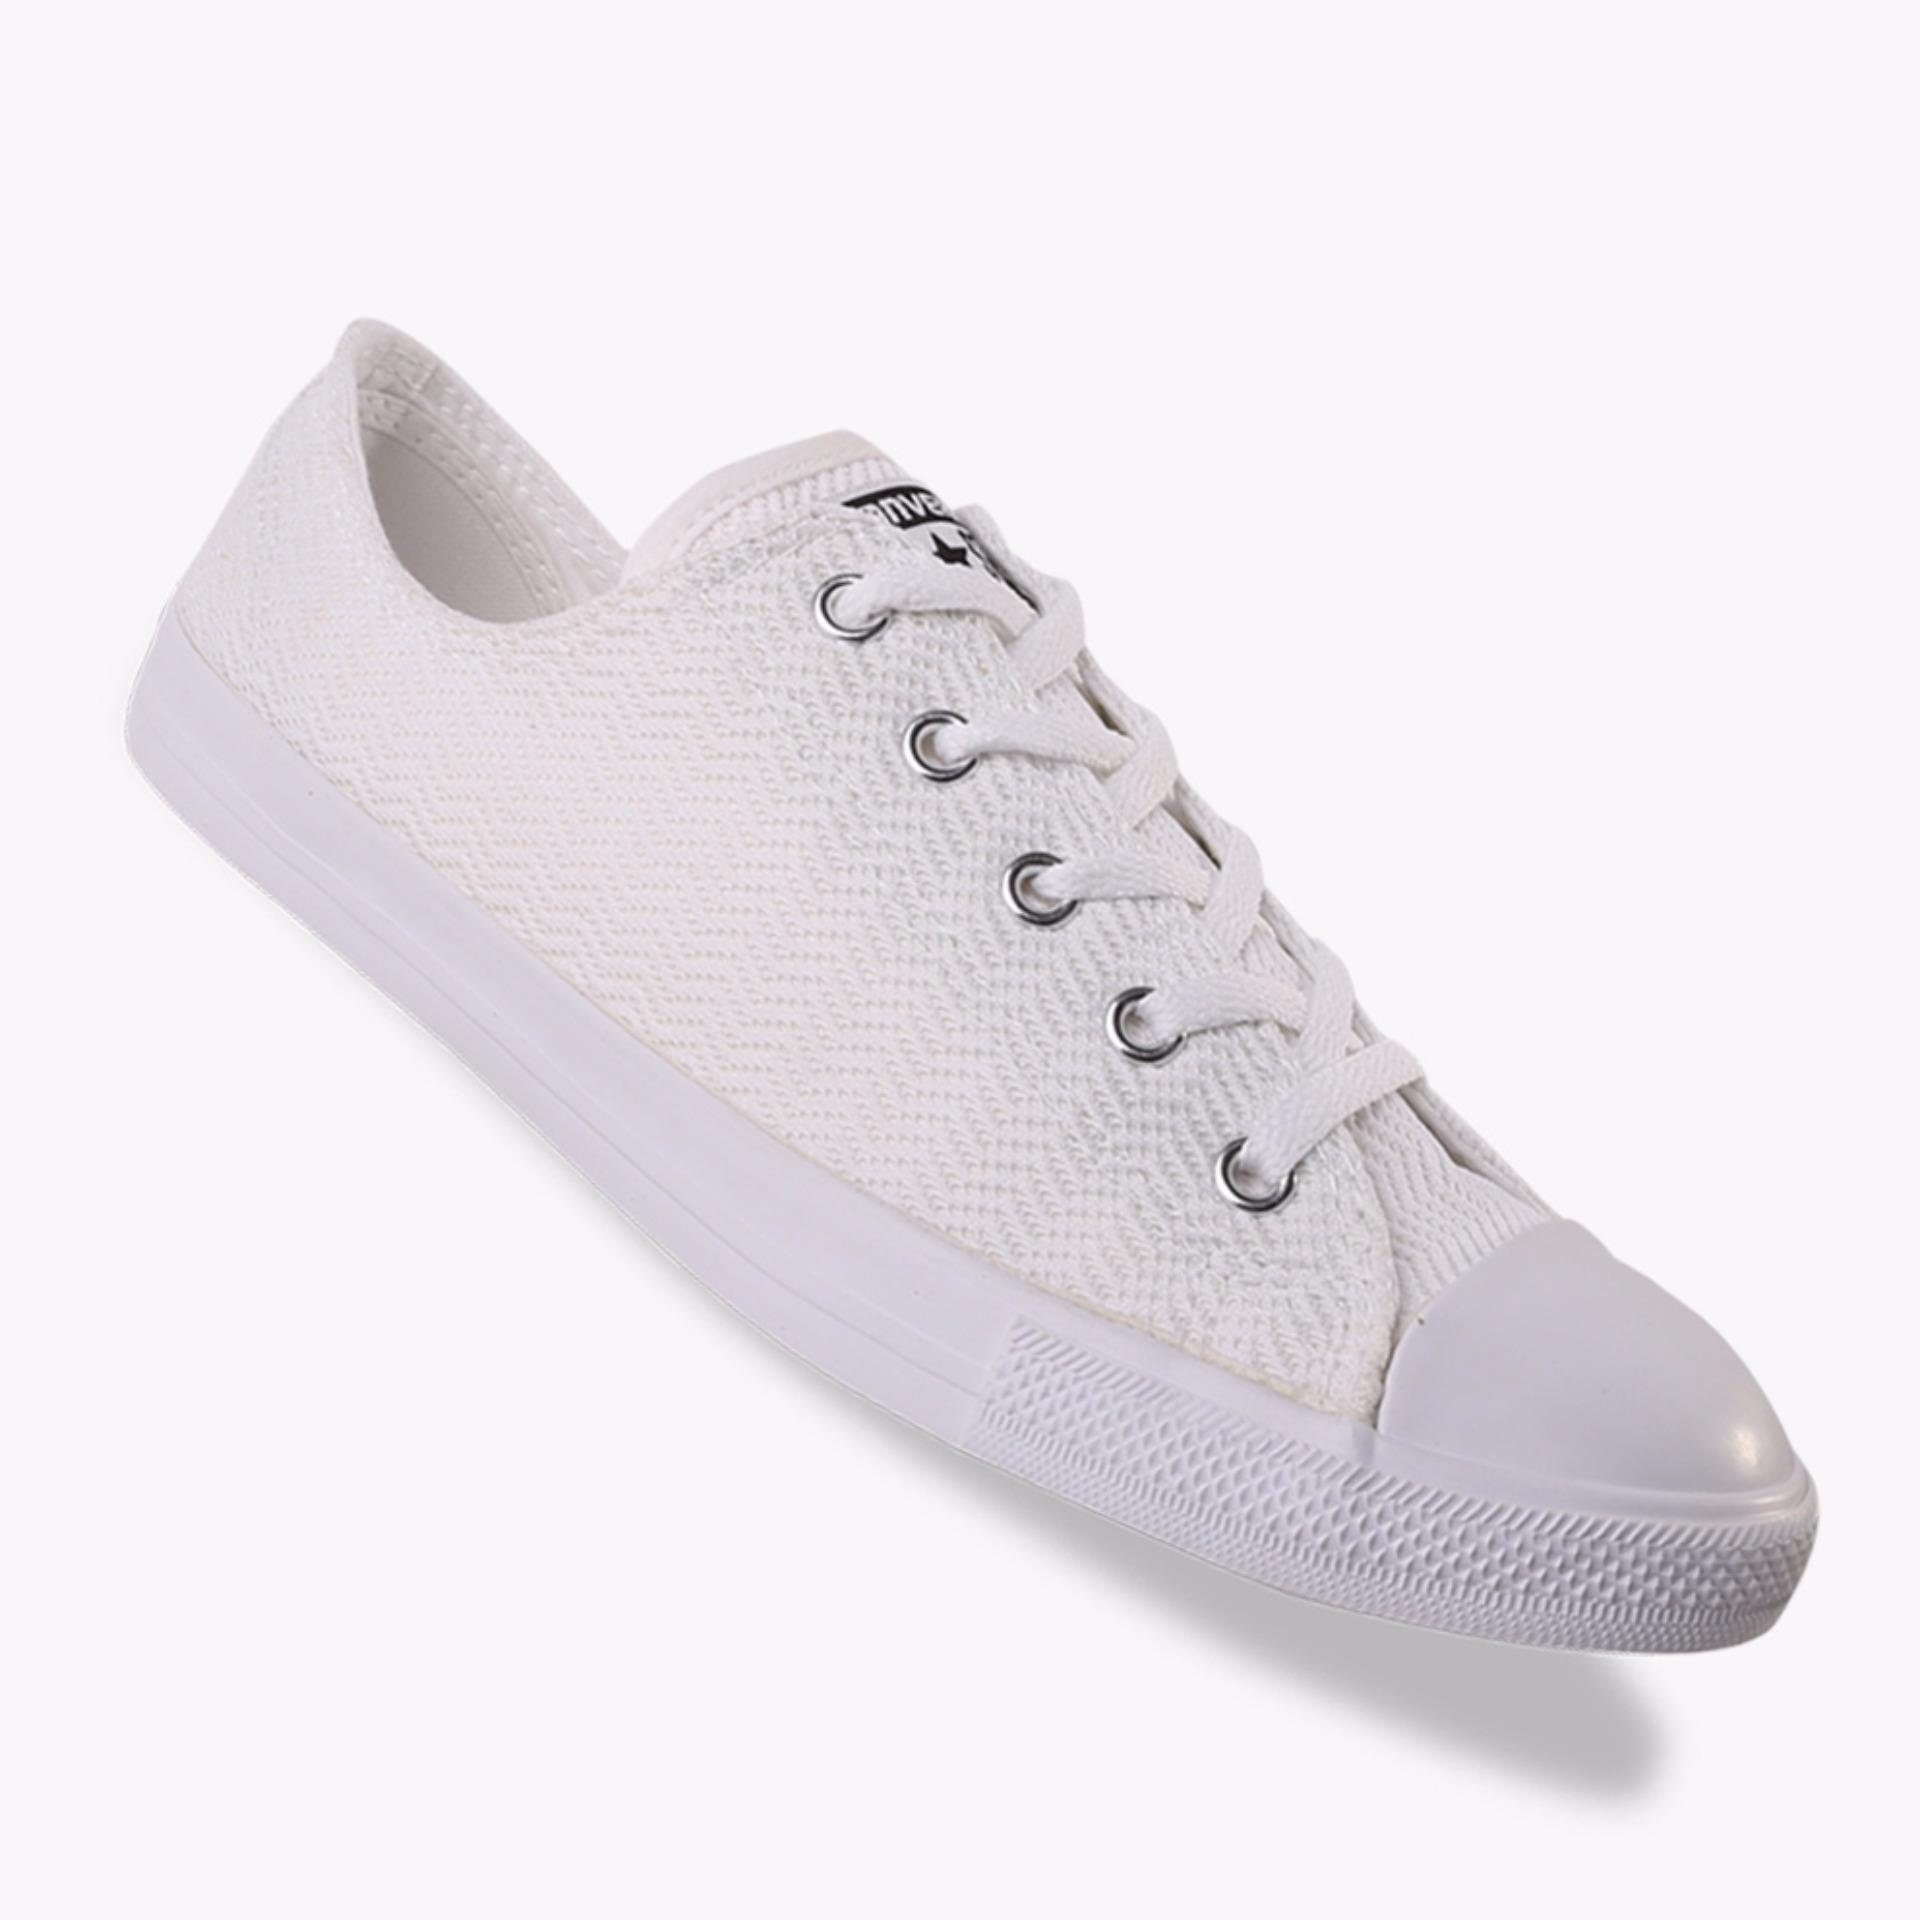 Harga Converse Chuck Taylor All Star Dainty Ox Women S Sneakers Shoes Putih Terbaik